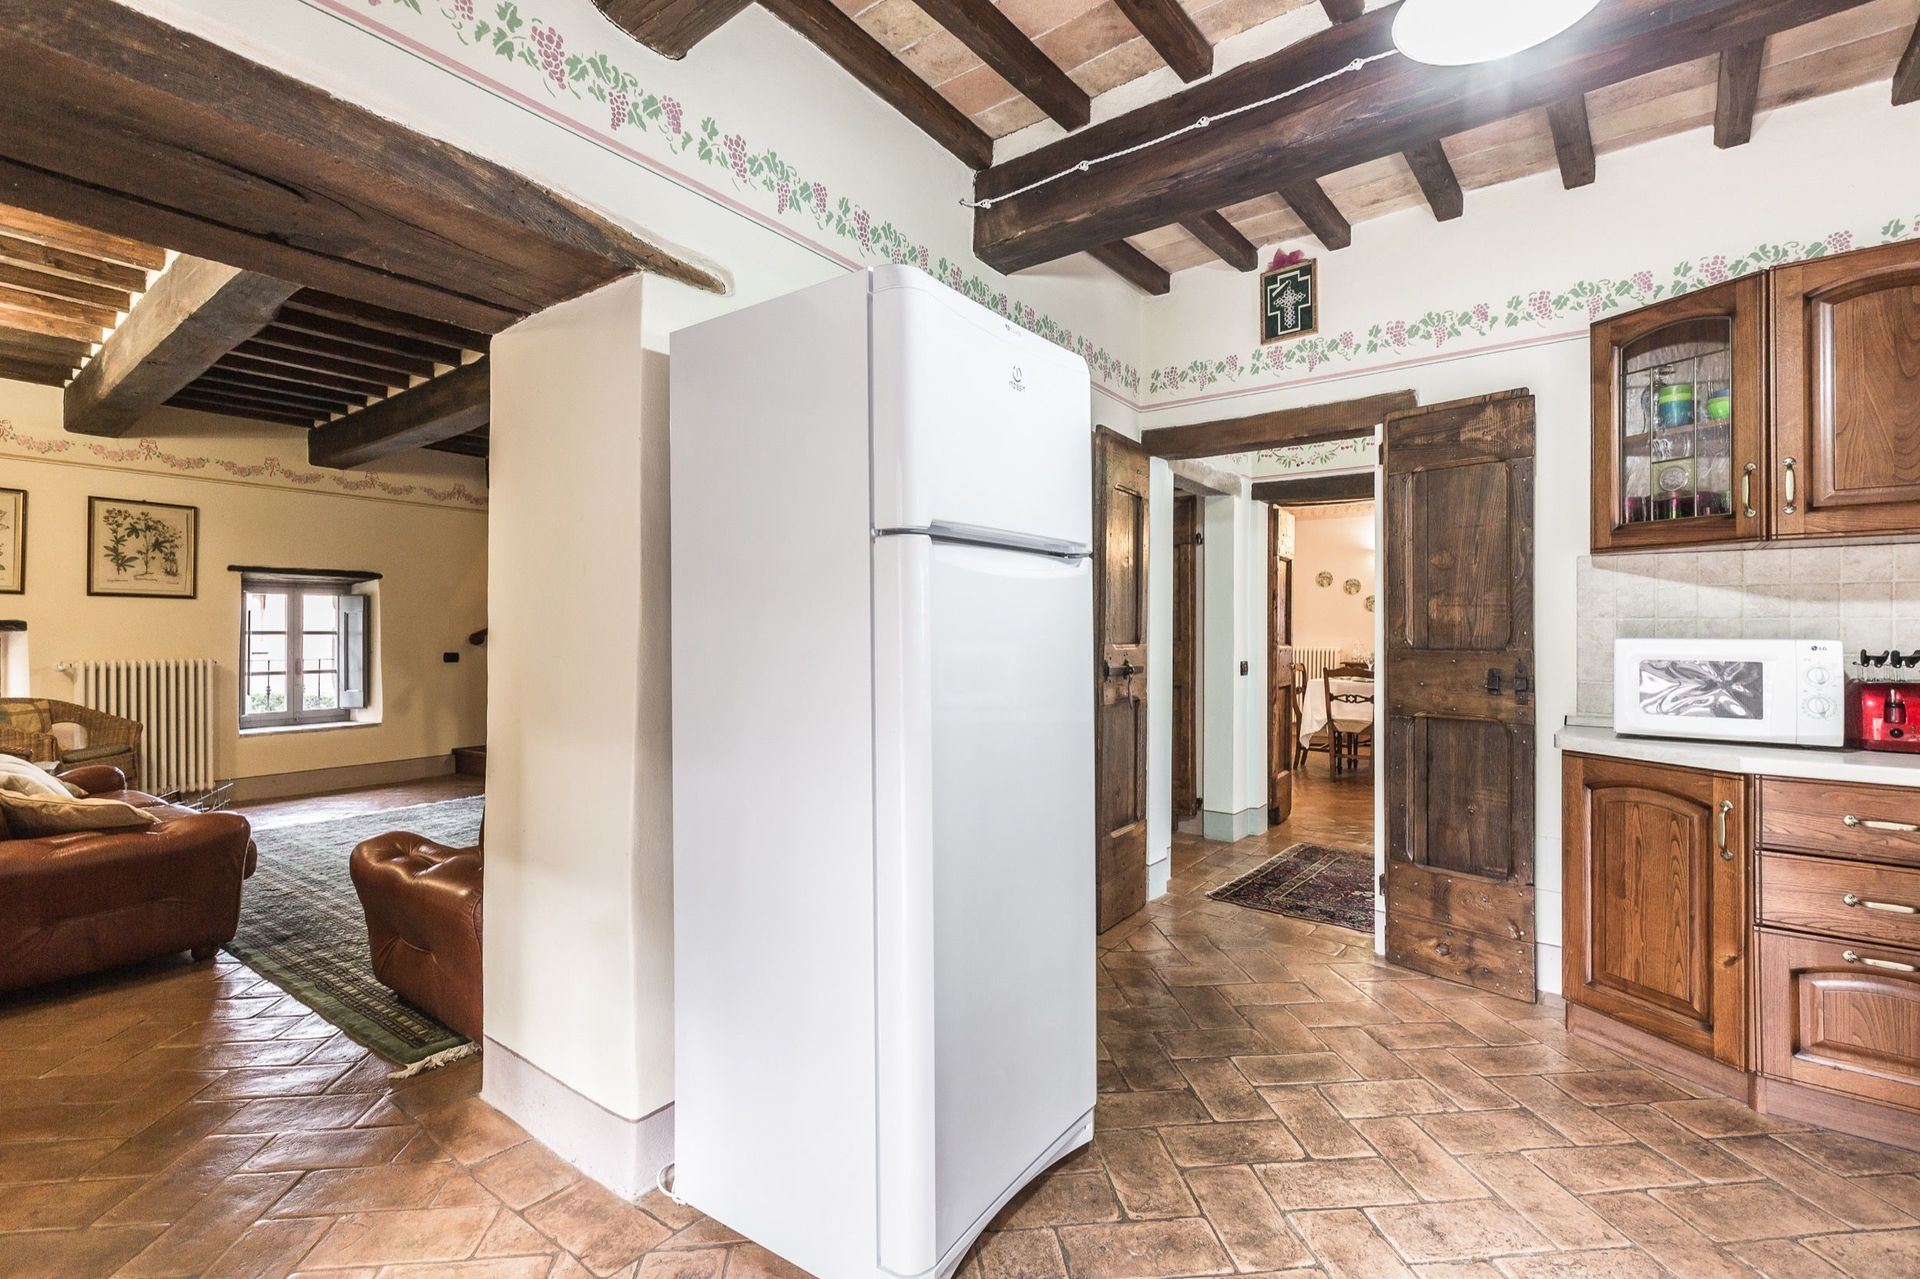 A Plus Keuken Tienen Monterchi Villa Vacation Rental Torre Del Cielo That Sleeps 10